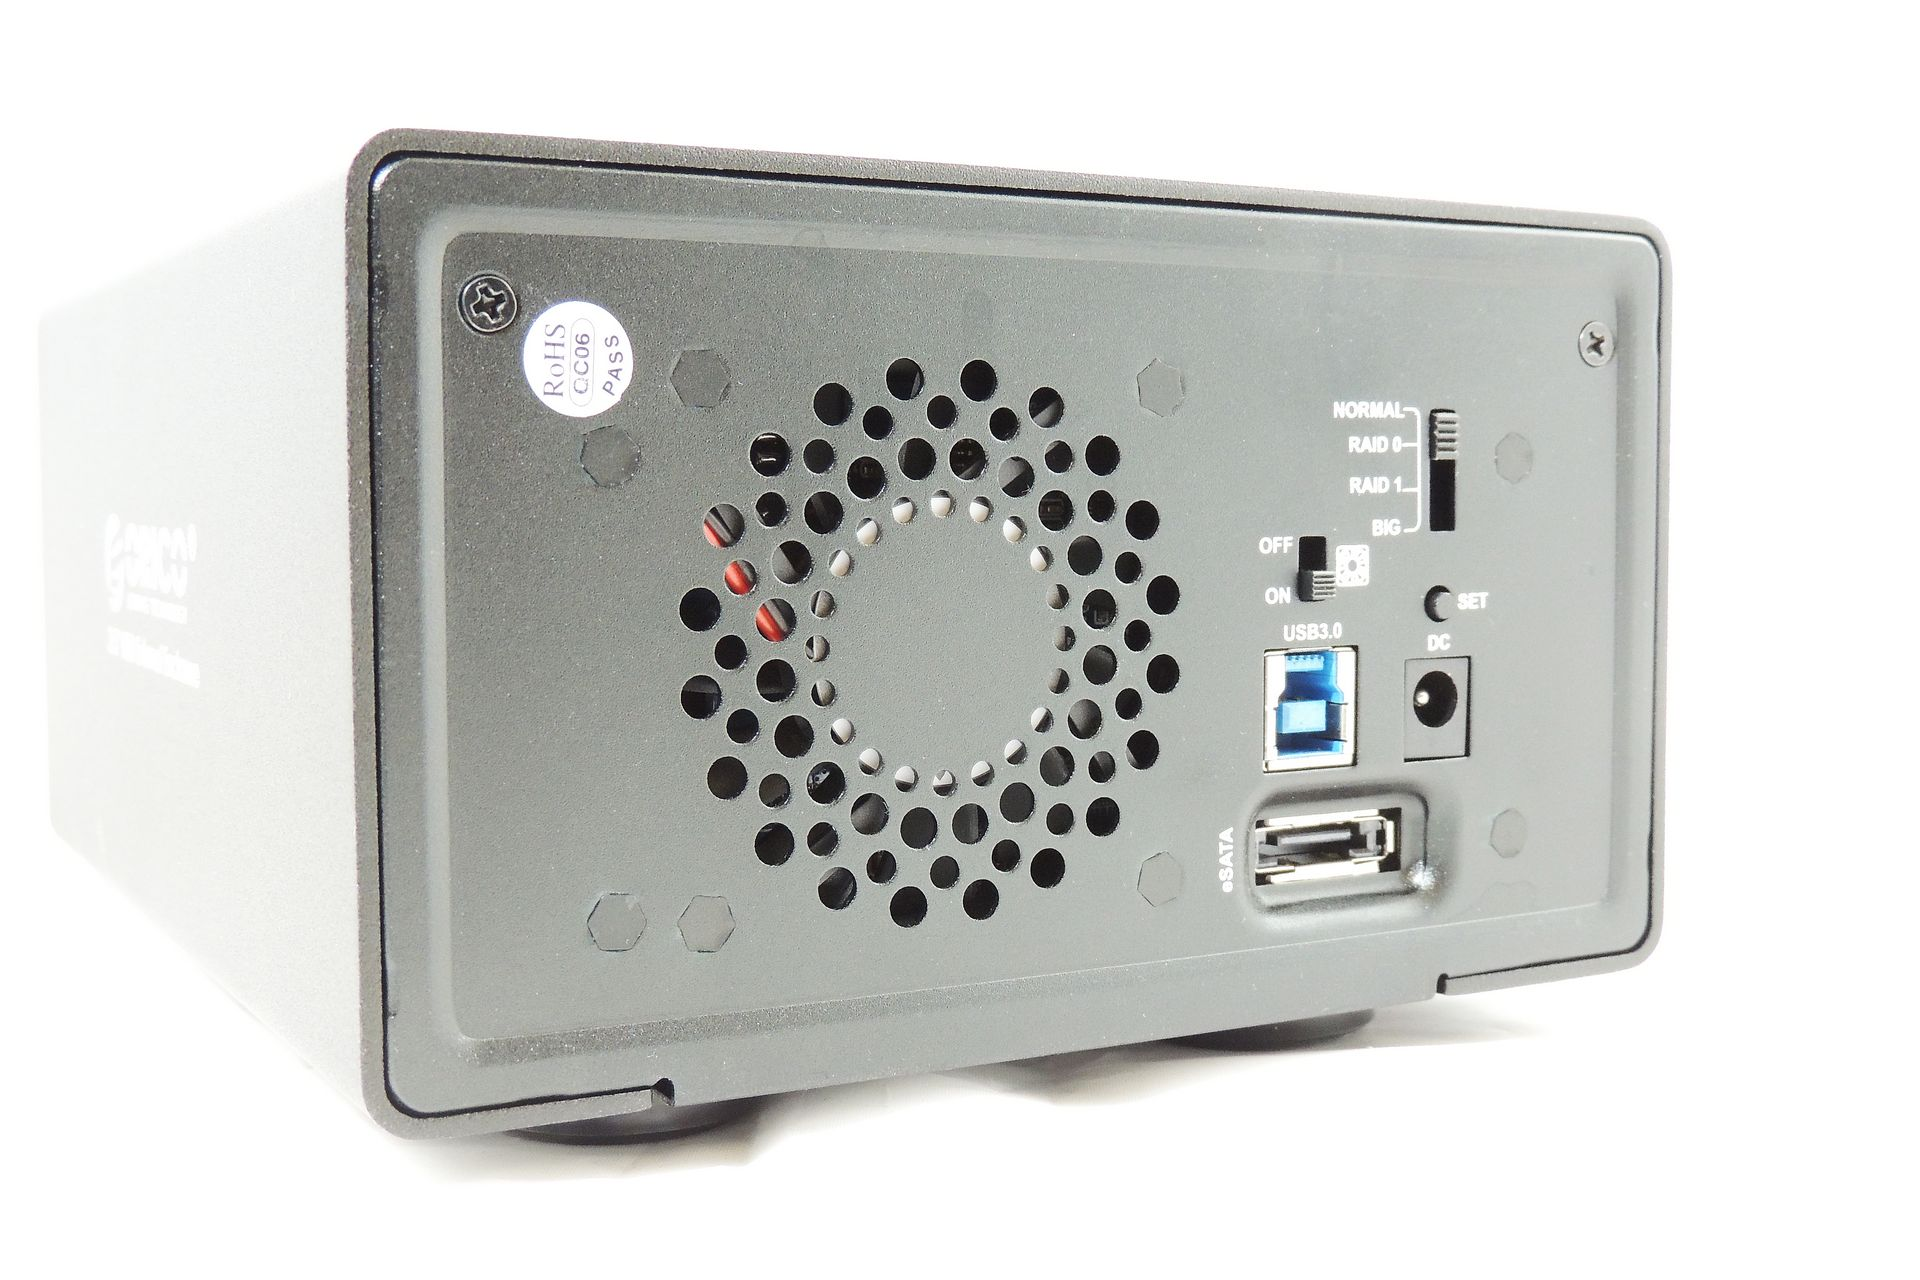 Orico external hard drive enclosure with RAID, USB 3.0 for sale at Plasma Music